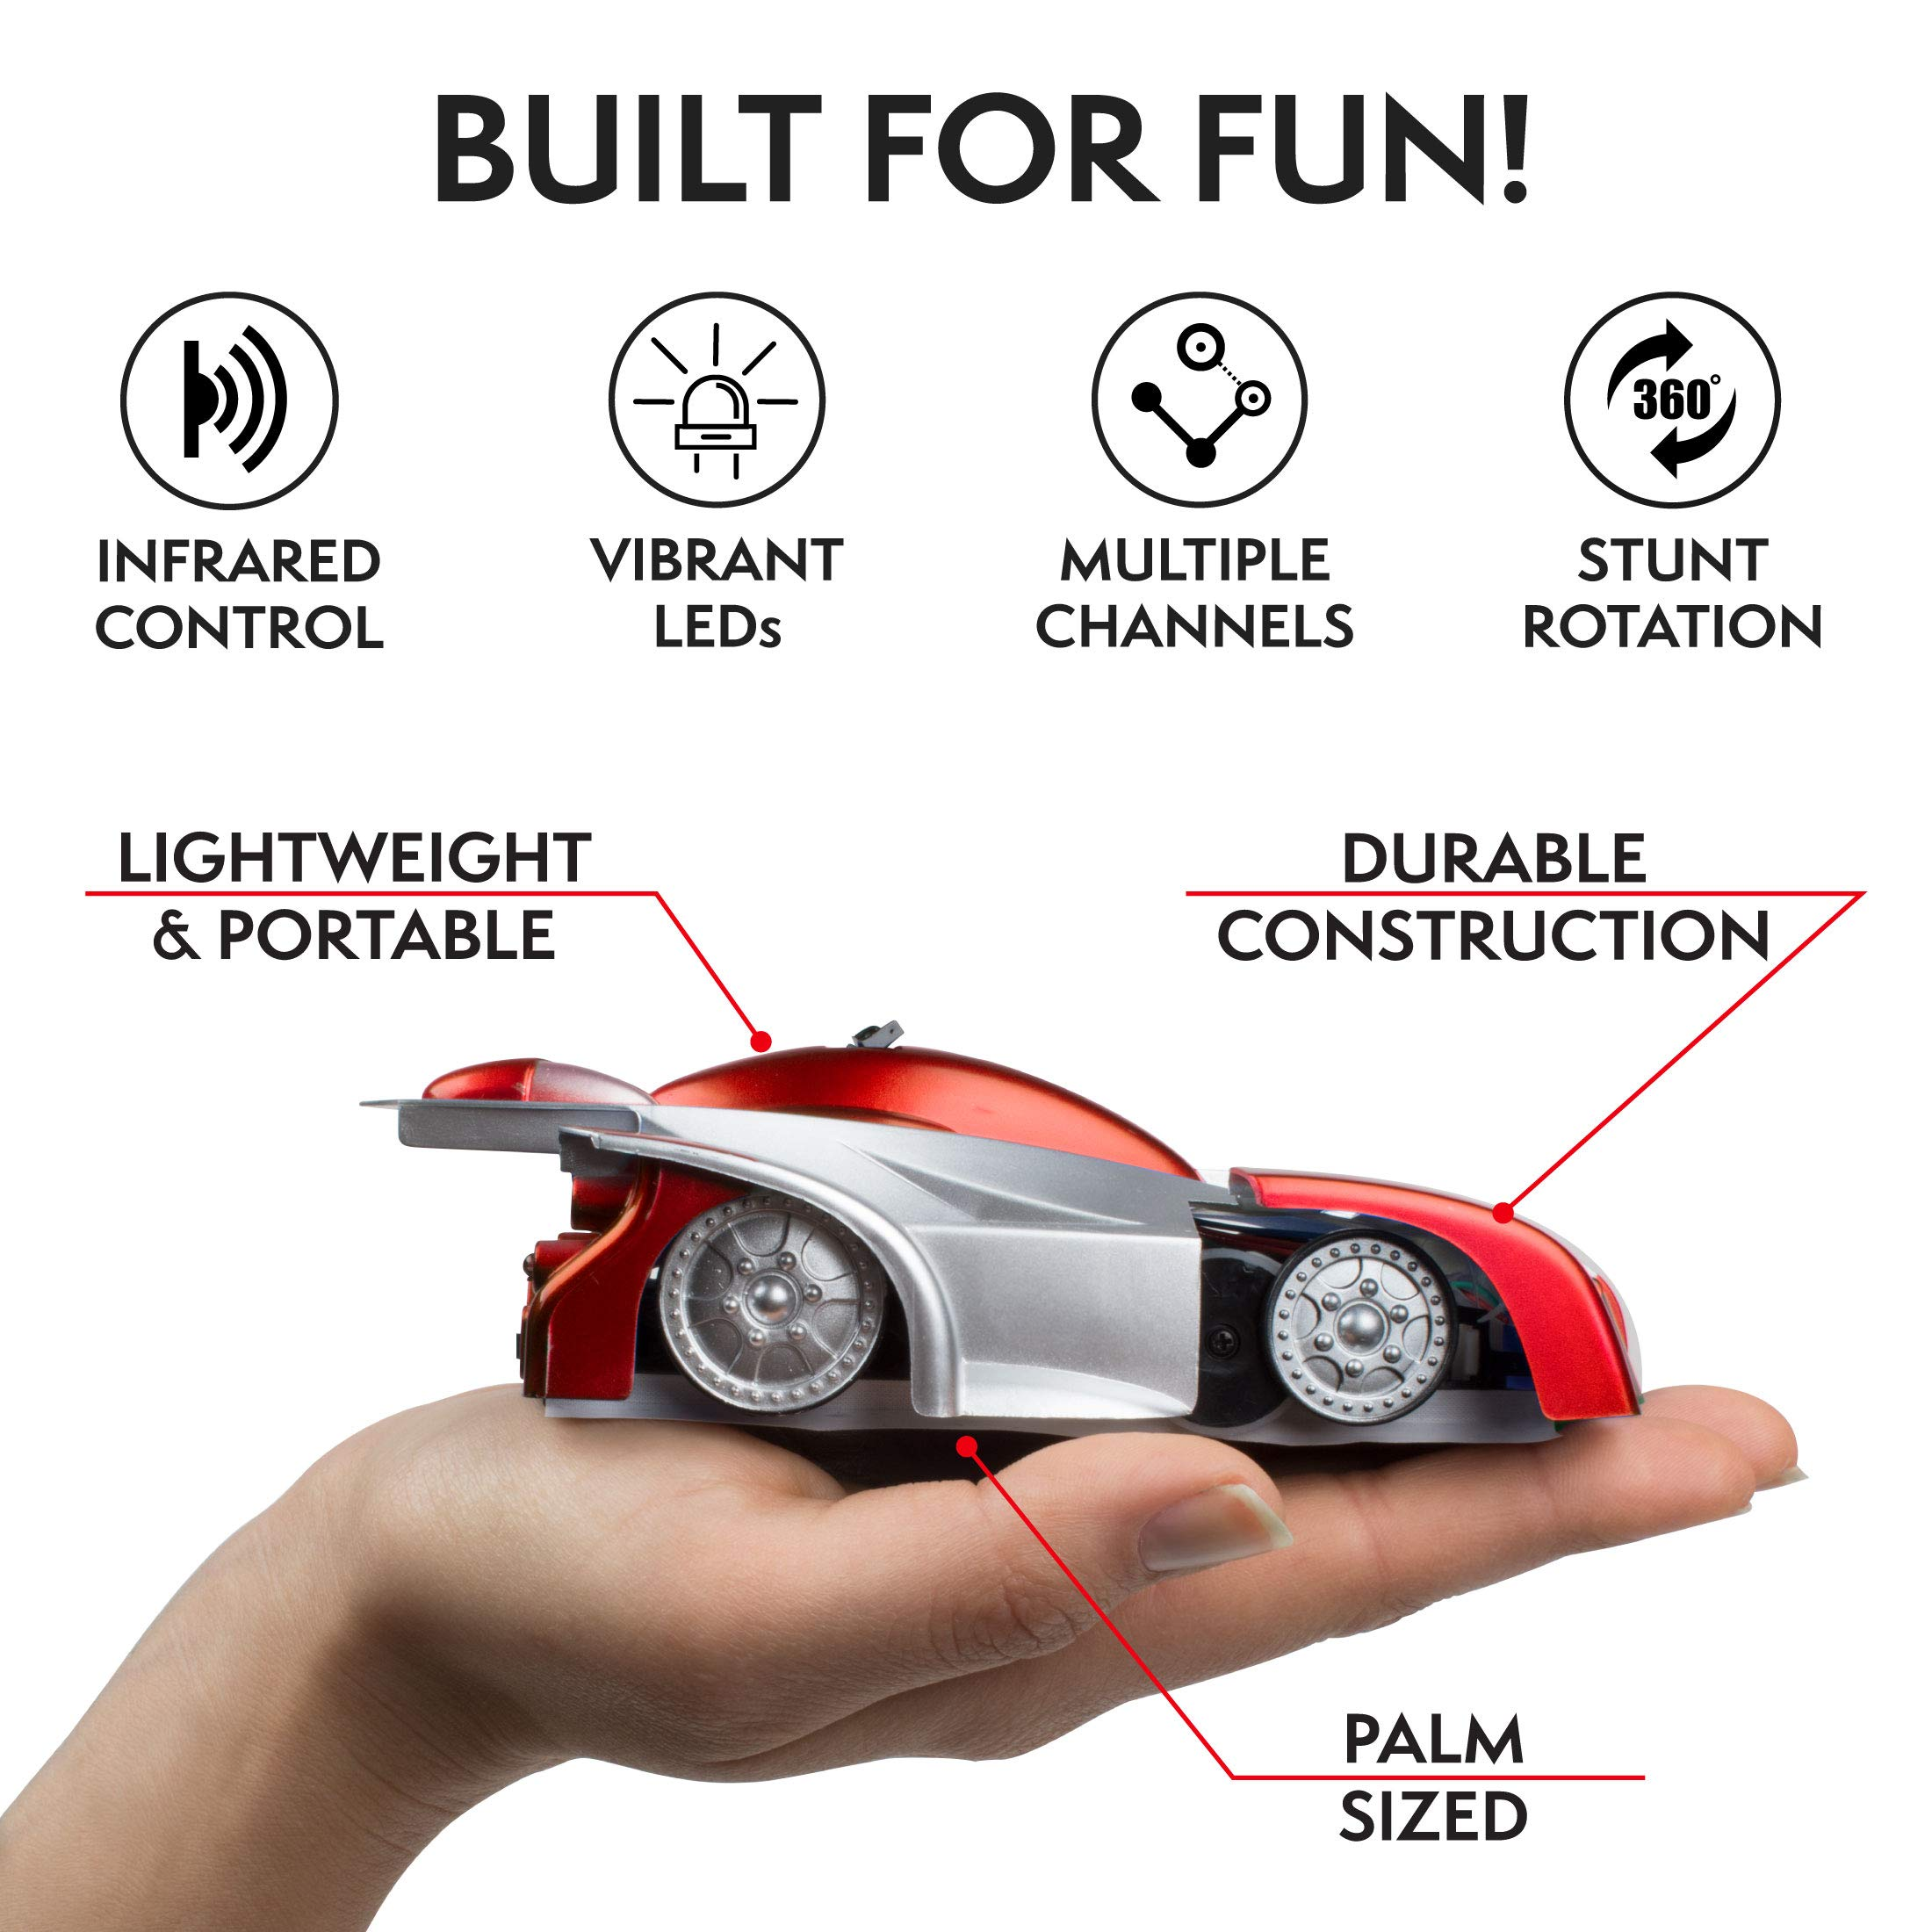 Force1 Remote Control Car Gravity Defying RC Car - RC Cars for Kids and Adults, Race Car Boys Toys for Floor or Wall w/ USB for Rechargeable Fast RC Car (Red) by Force1 (Image #4)